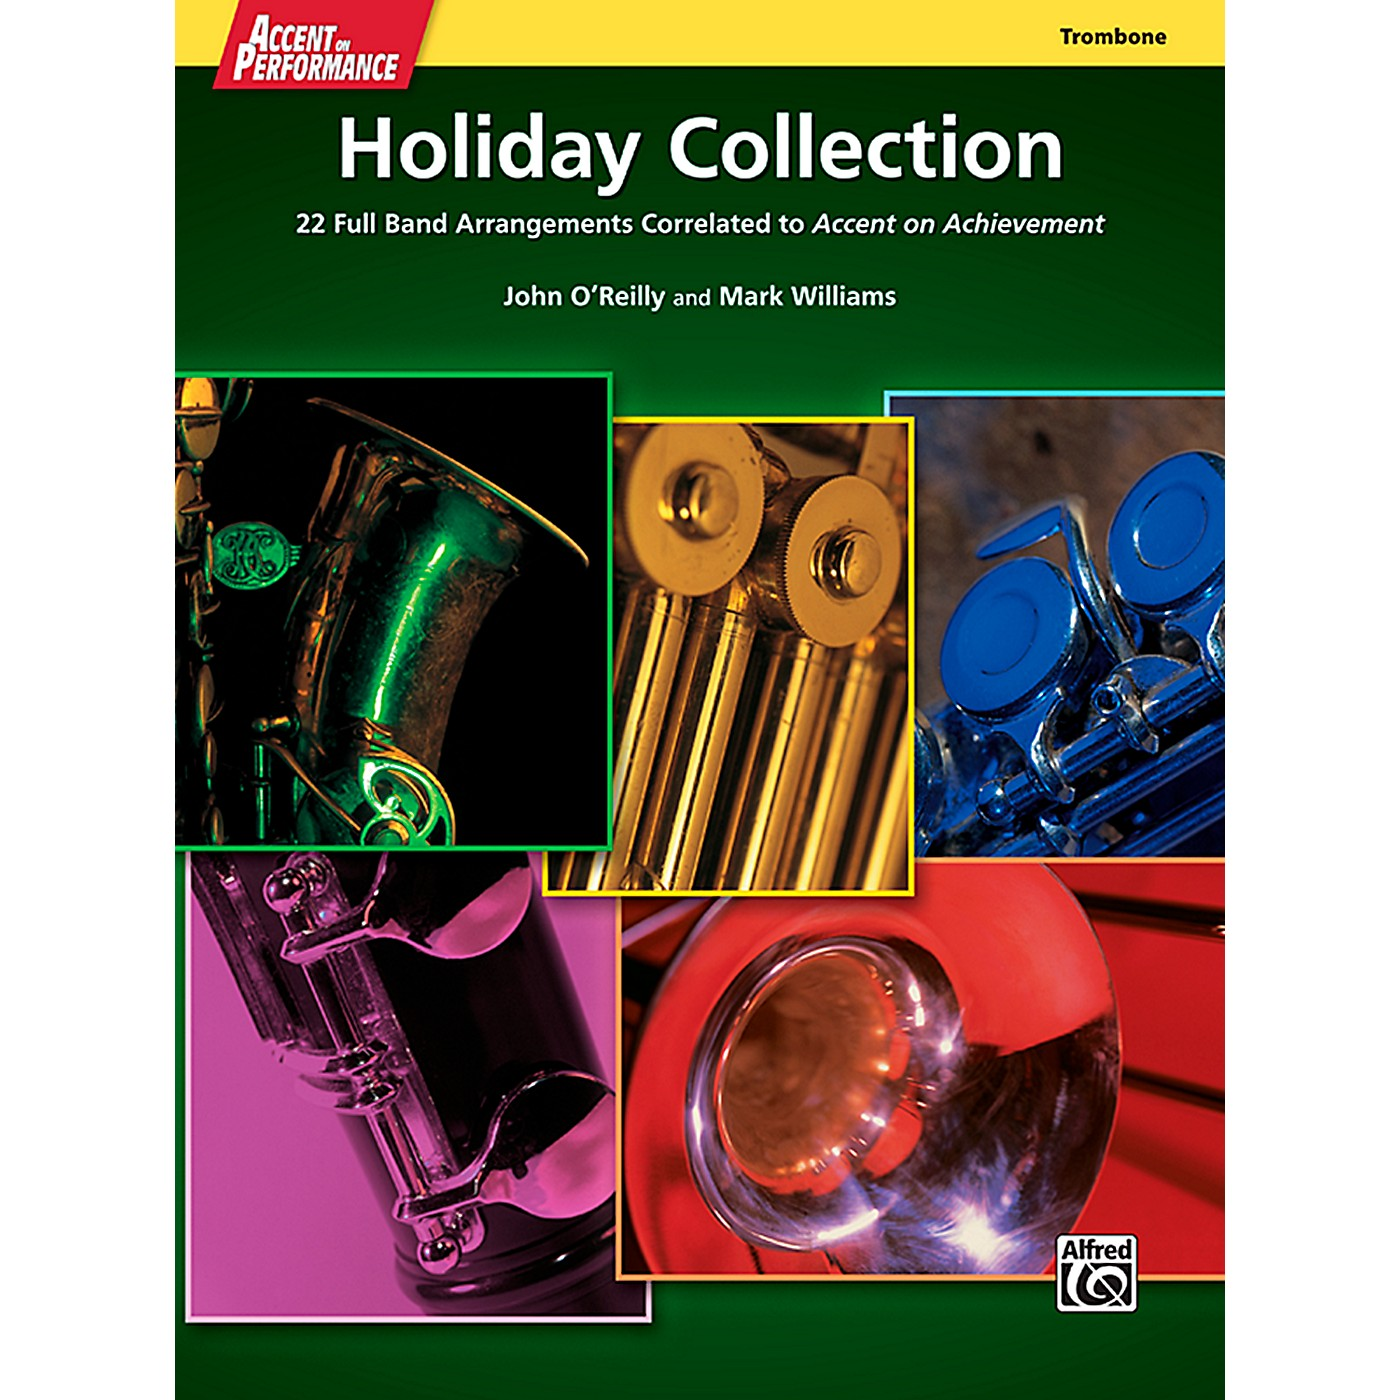 Alfred Accent on Performance Holiday Collection Trombone Book thumbnail